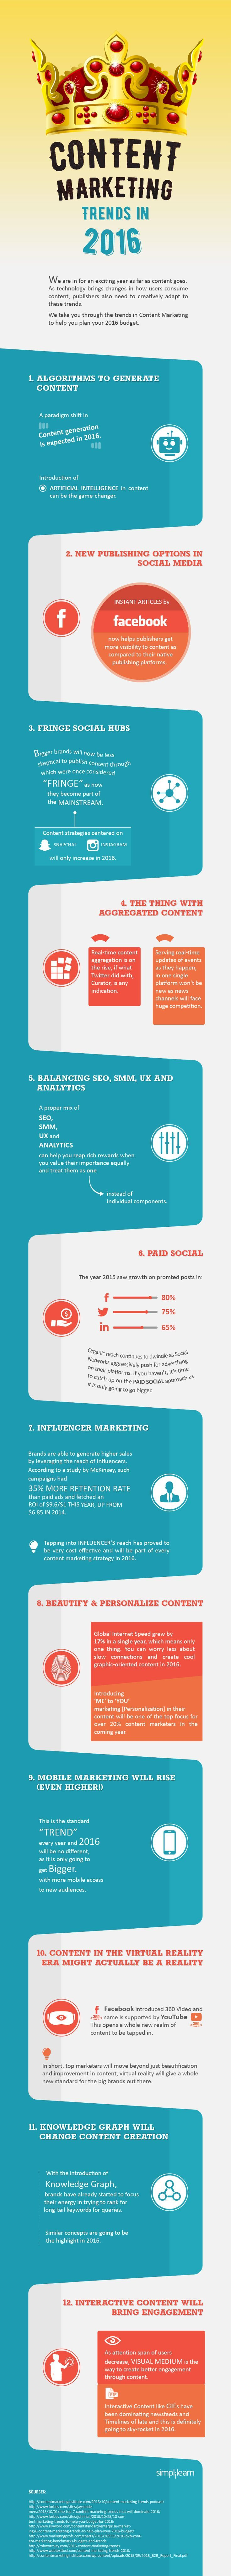 We are in for an exciting year as far as content goes. As technology brings changes in how users consume content, publishers also need to creatively adapt to these trends. We take you through the trends in Content Marketing to help you plan your 2016 budget. #socialmedia #radicalmarketing #marketingtrends